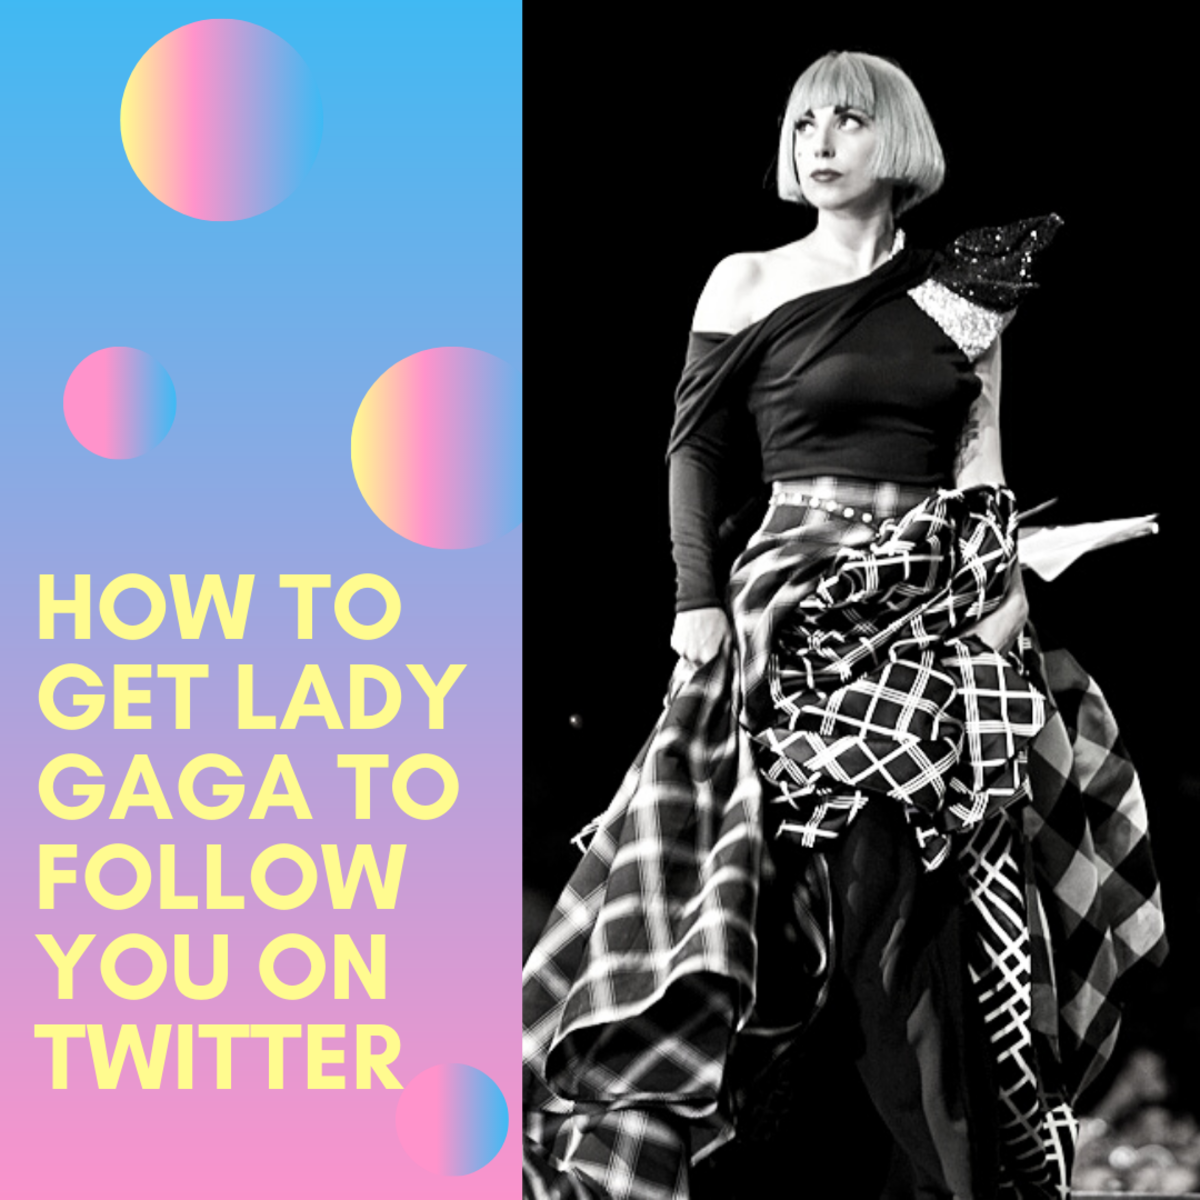 Learn the tips and tricks to get Lady Gaga to follow you on Twitter.